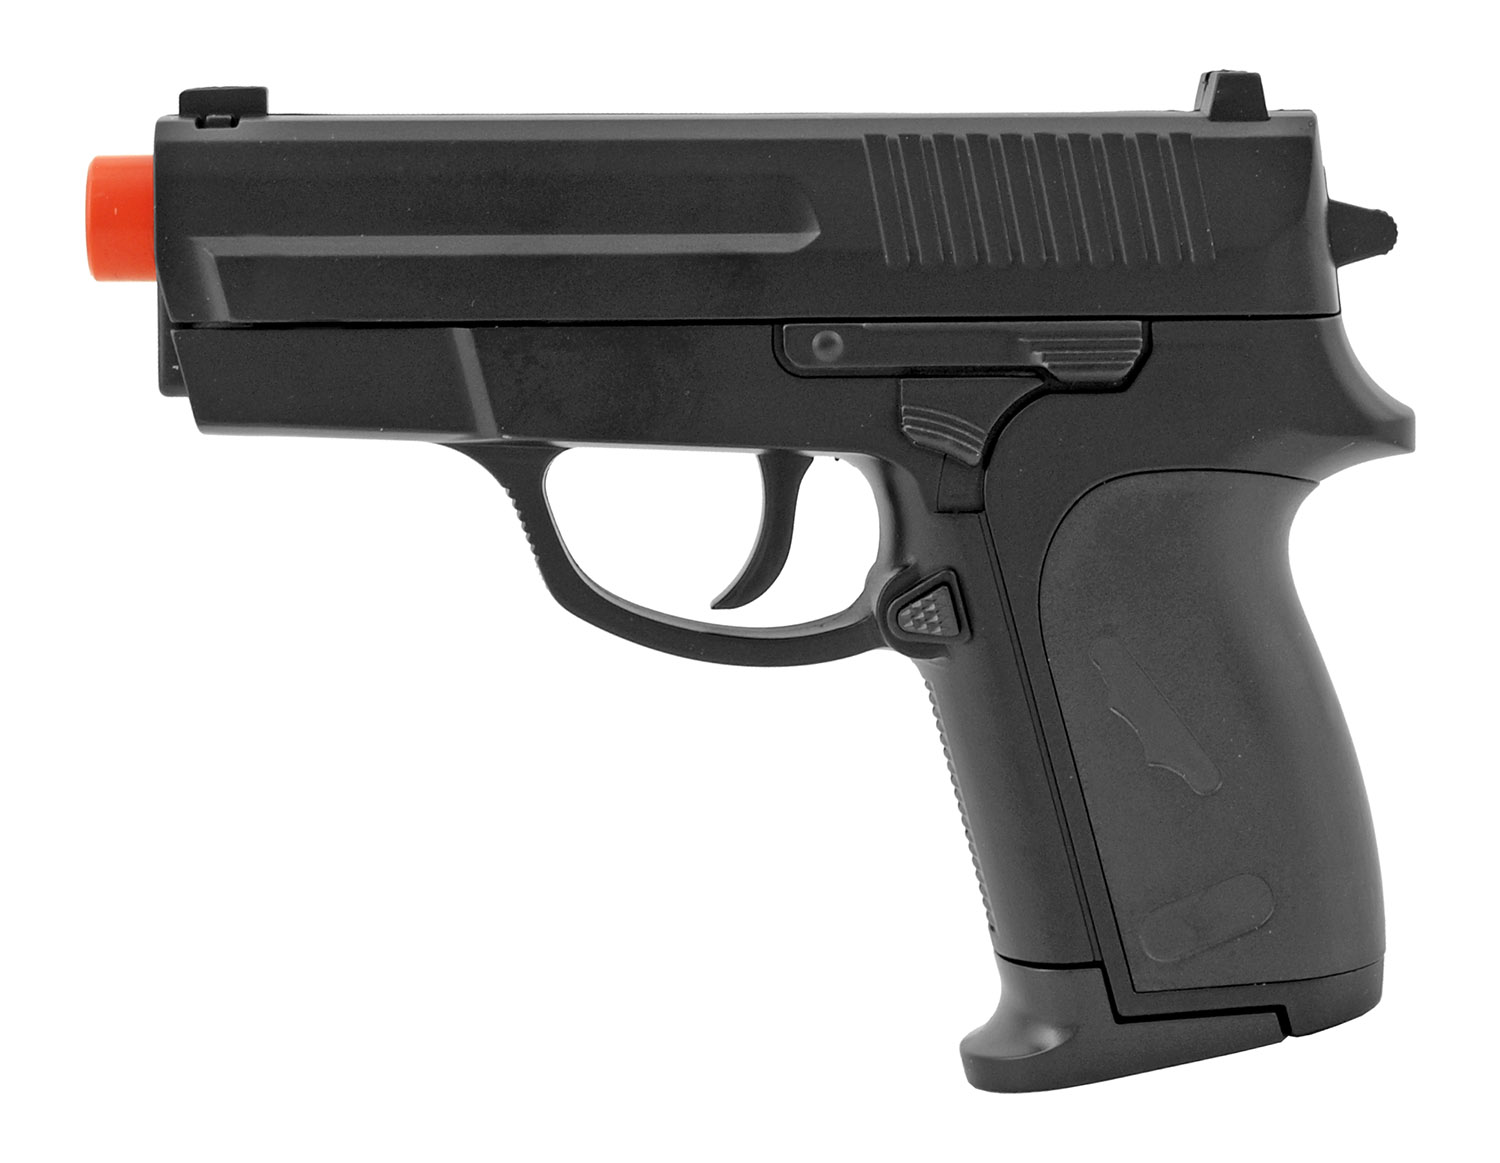 ZM01 Spring Powered Full Metal Airsoft 007 Style Pistol - Black